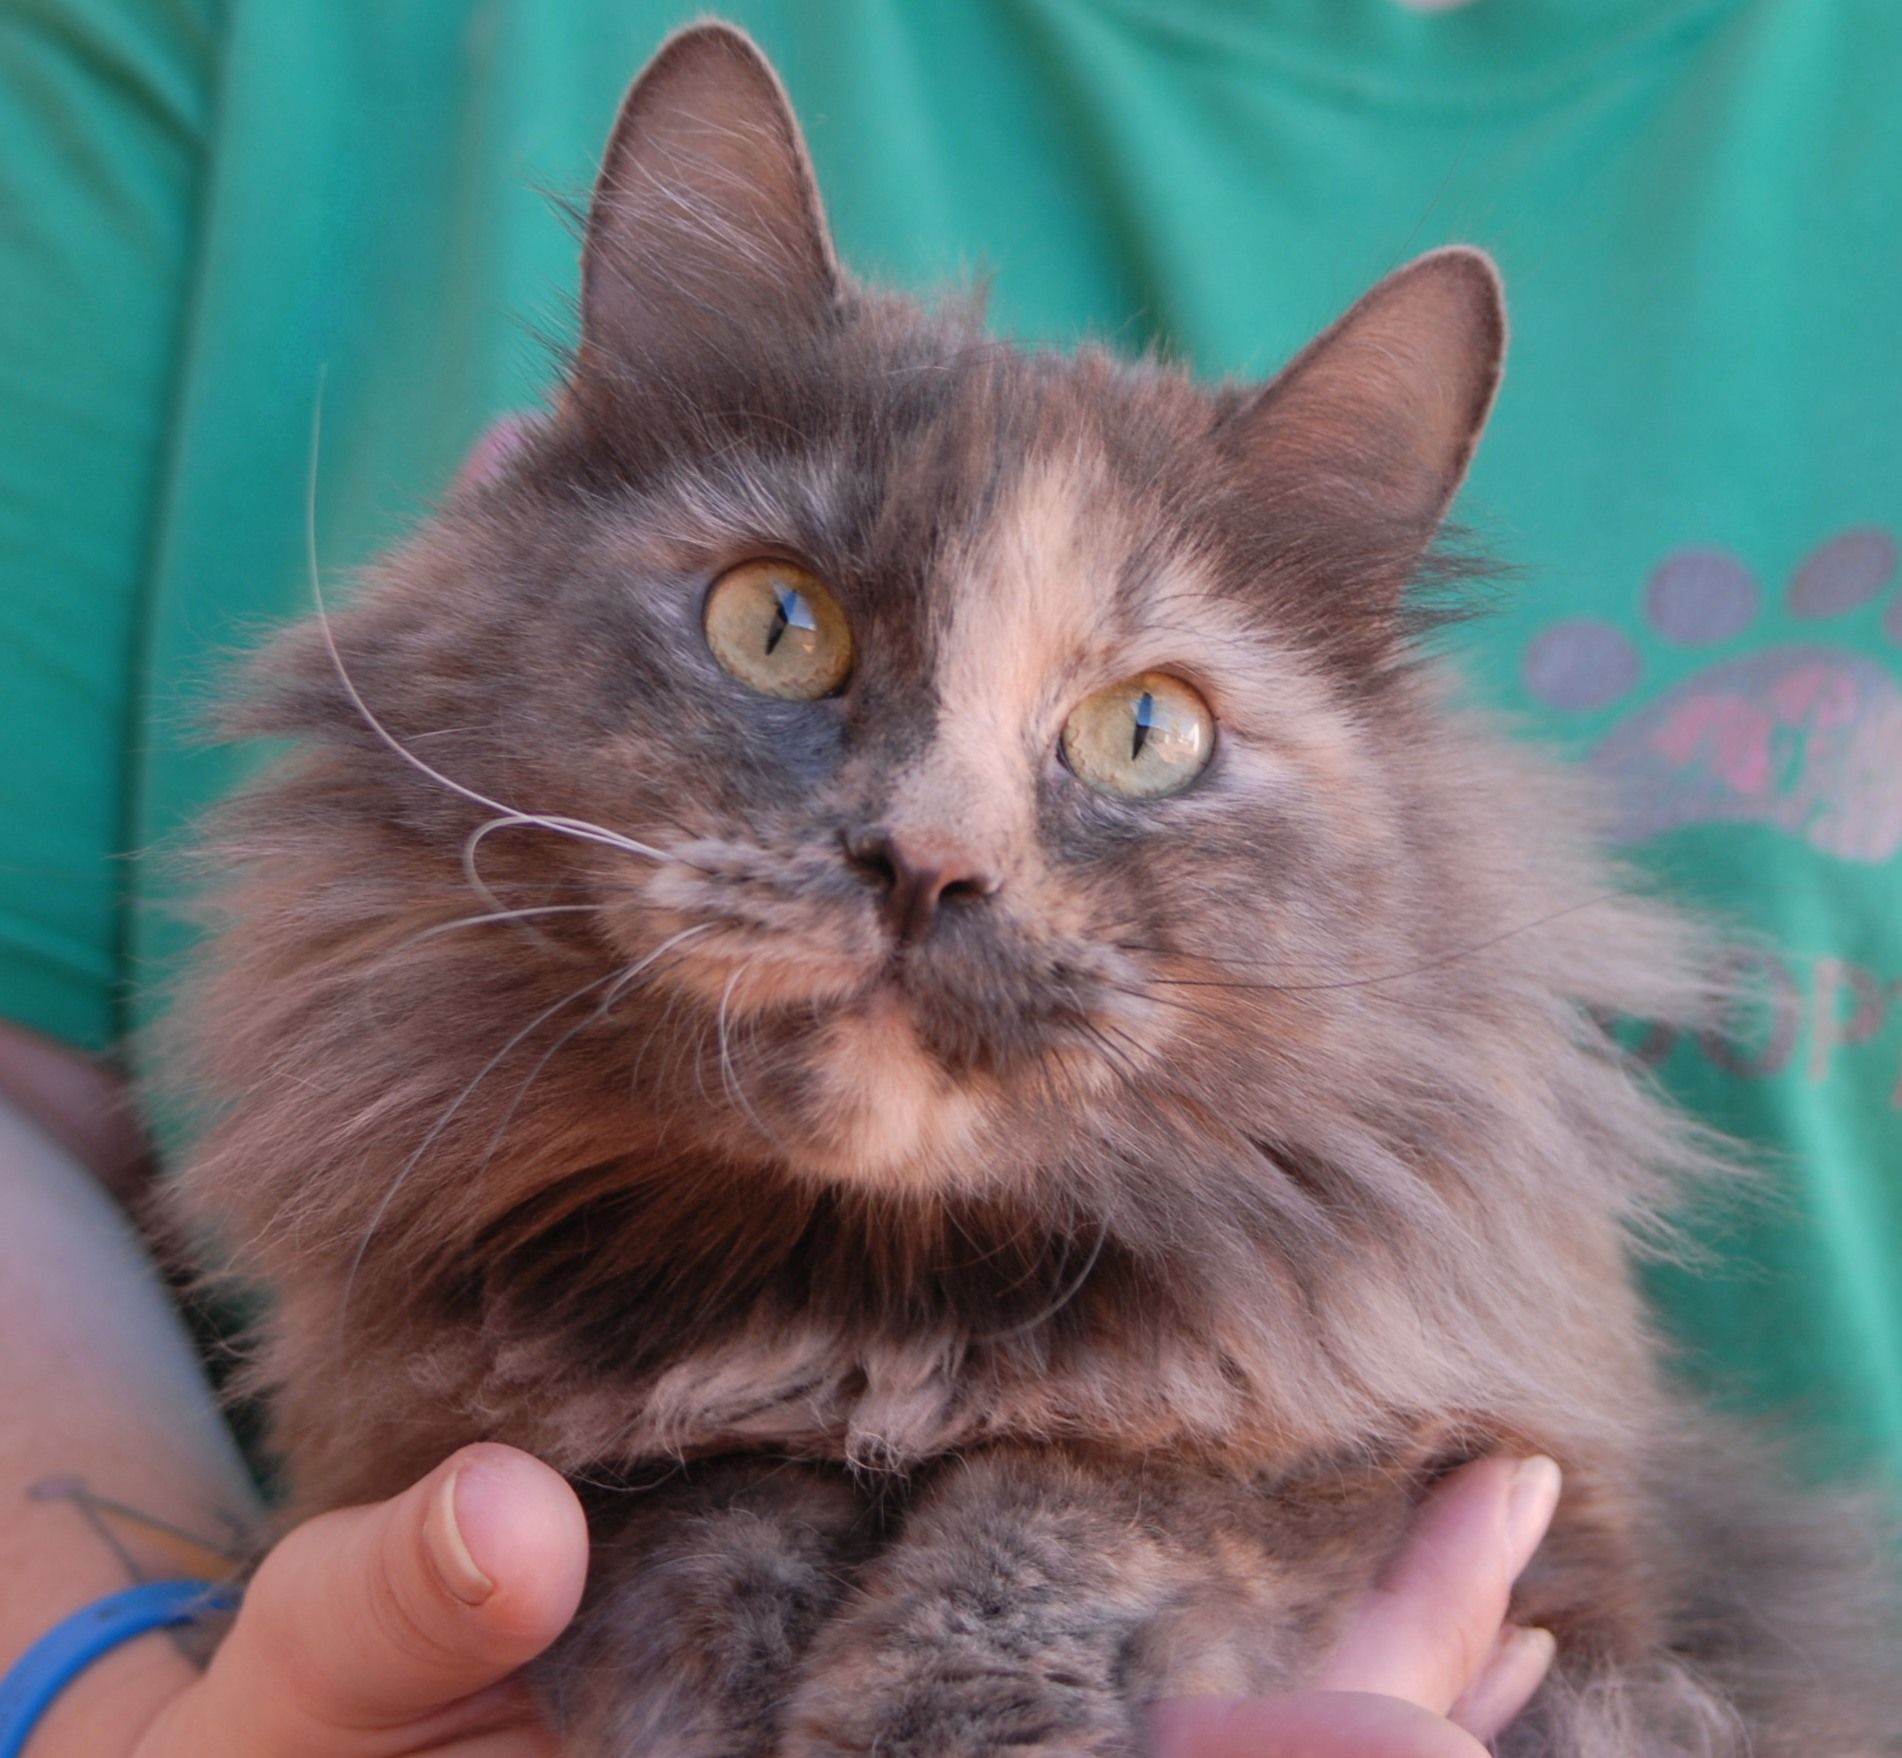 Cher Is A Young Superstar In Appearance And Lovebug In Personality Favored Activities Include Being Held Brushed And Cat Adoption Dog Adoption Pet Adoption